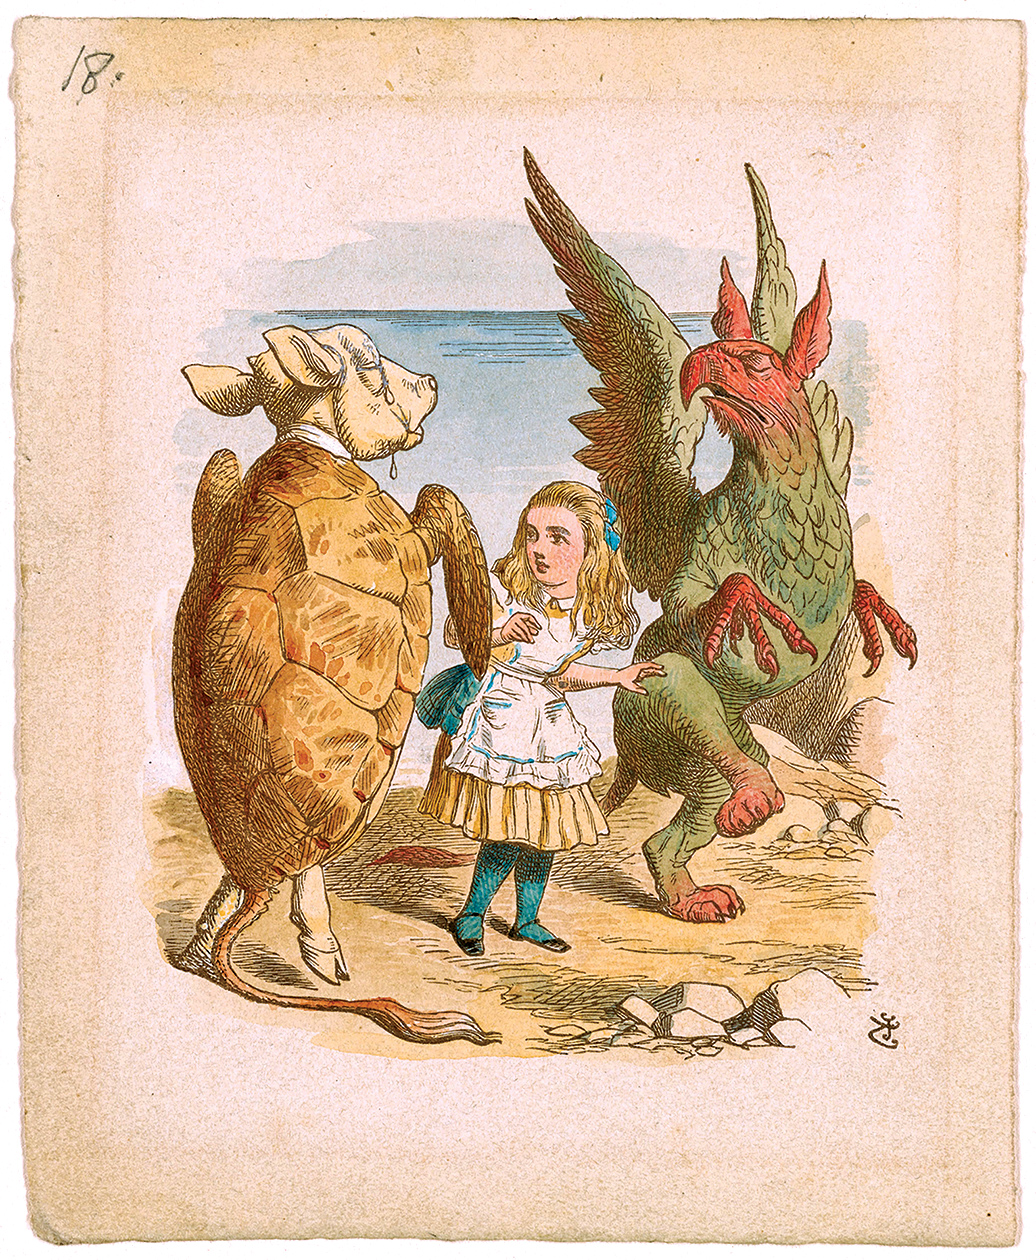 Illustration by John Tenniel for 'Alice's Adventures in Wonderland' by Lewis Carroll